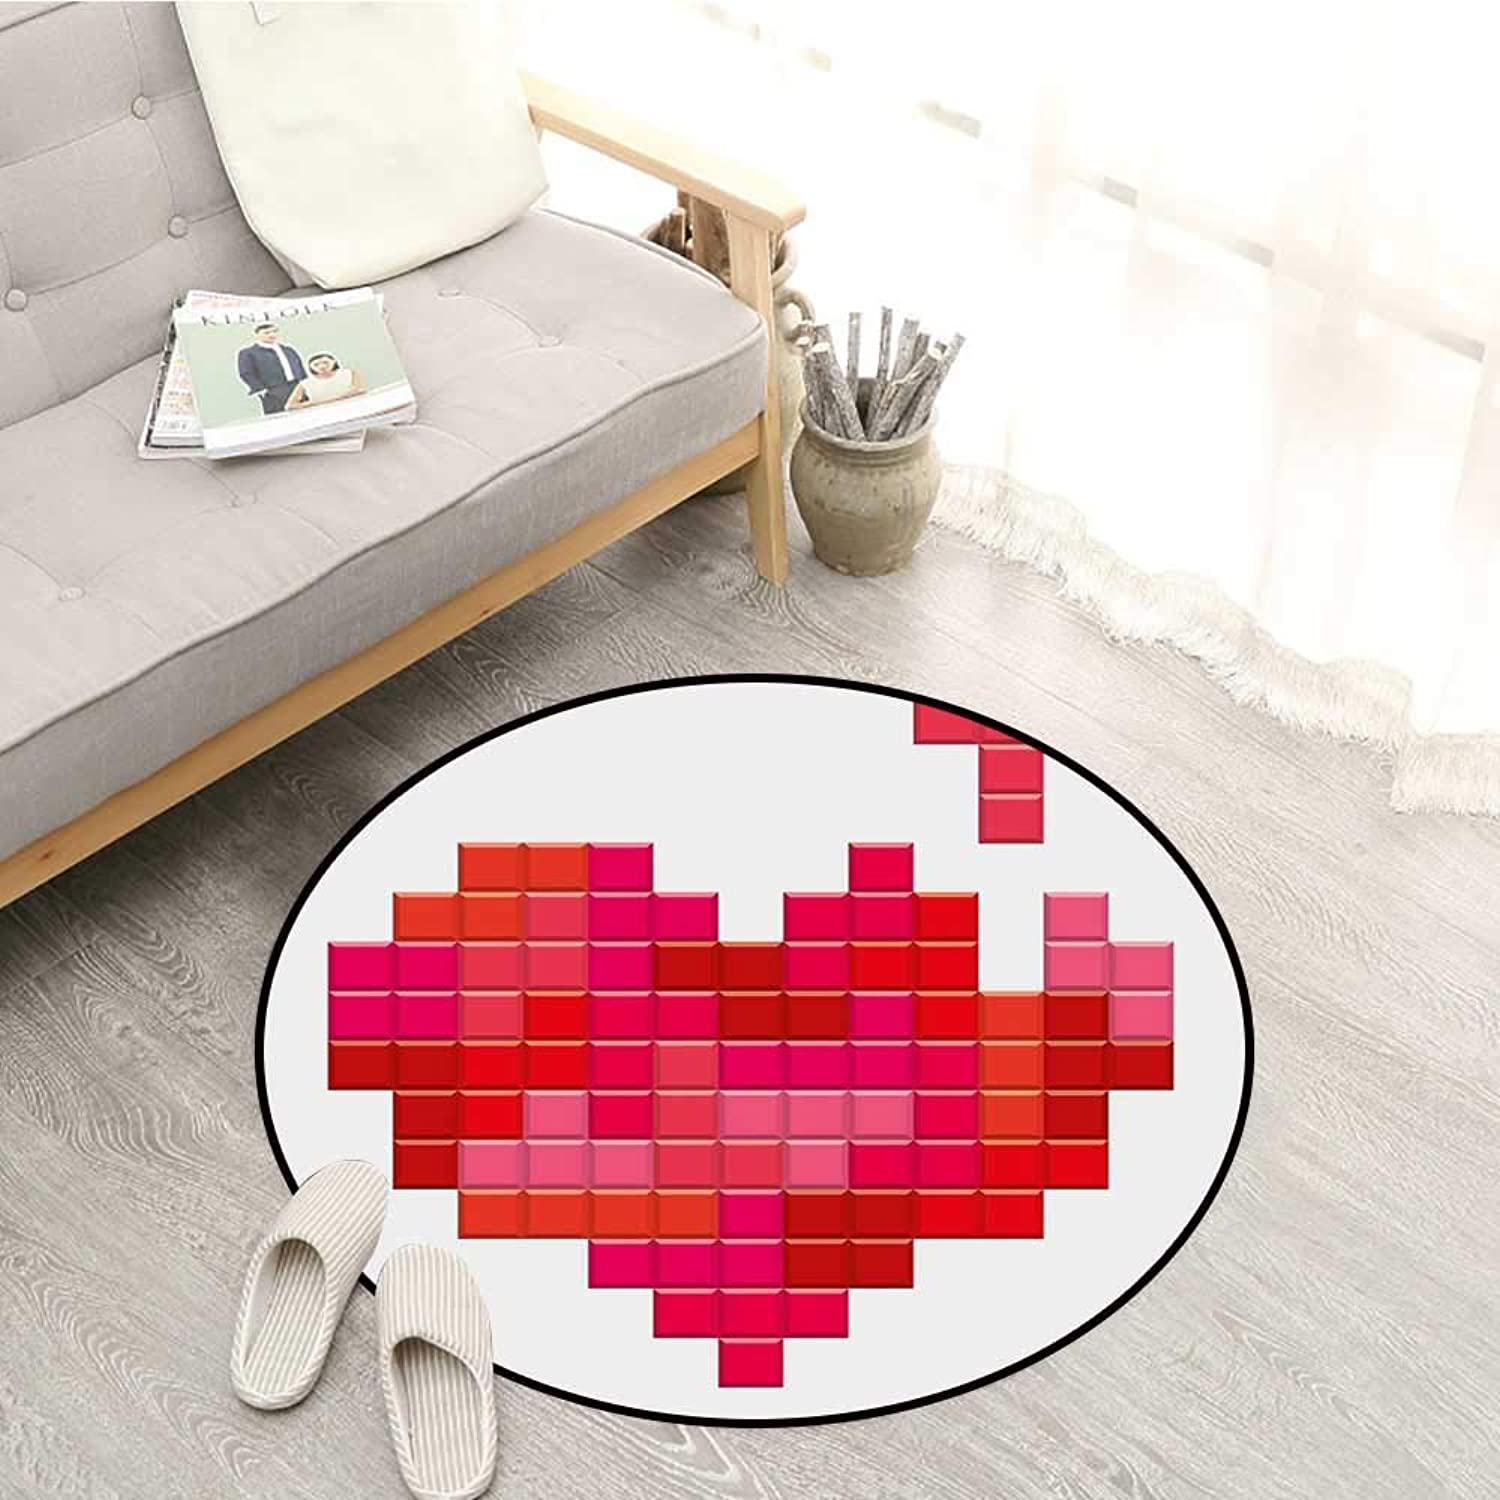 Valentines Day Skid-Resistant Rugs Video Game Tetris Red Heart Vintage Pixelated Design Joyful Romantic Sofa Coffee Table Mat 4'3  Red Pink Scarlet